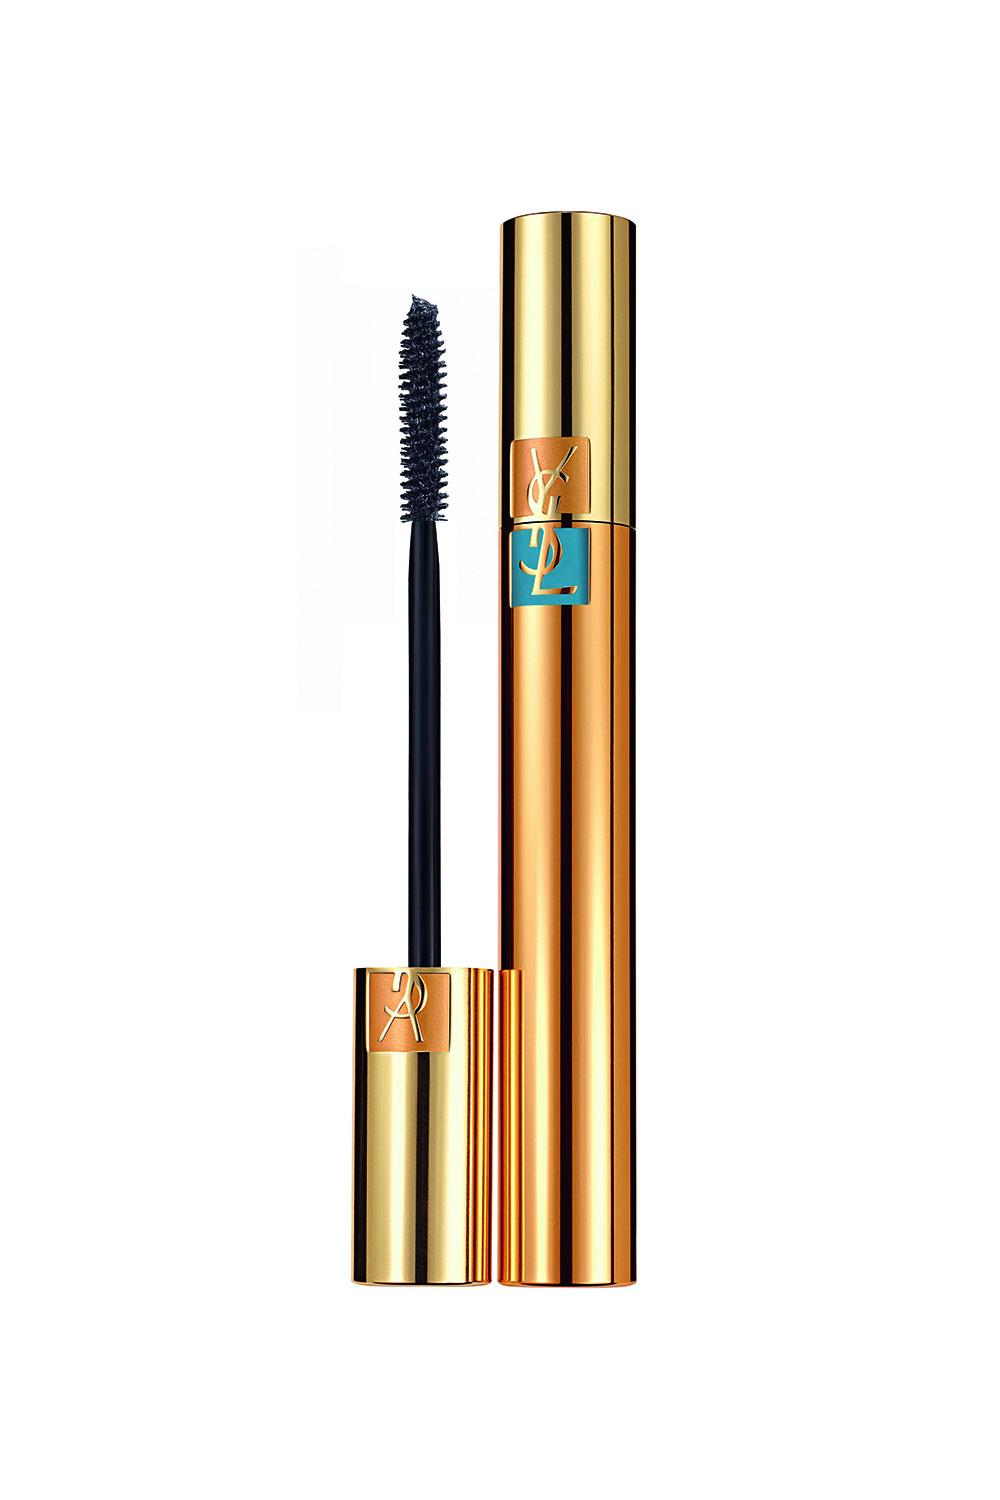 mejor máscara de pestañas para tu tipo de pestañas Máscara de Pestañas Volume Effet Faux Cils Waterproof de Yves Saint Laurent, 35,60. Recto y tupido